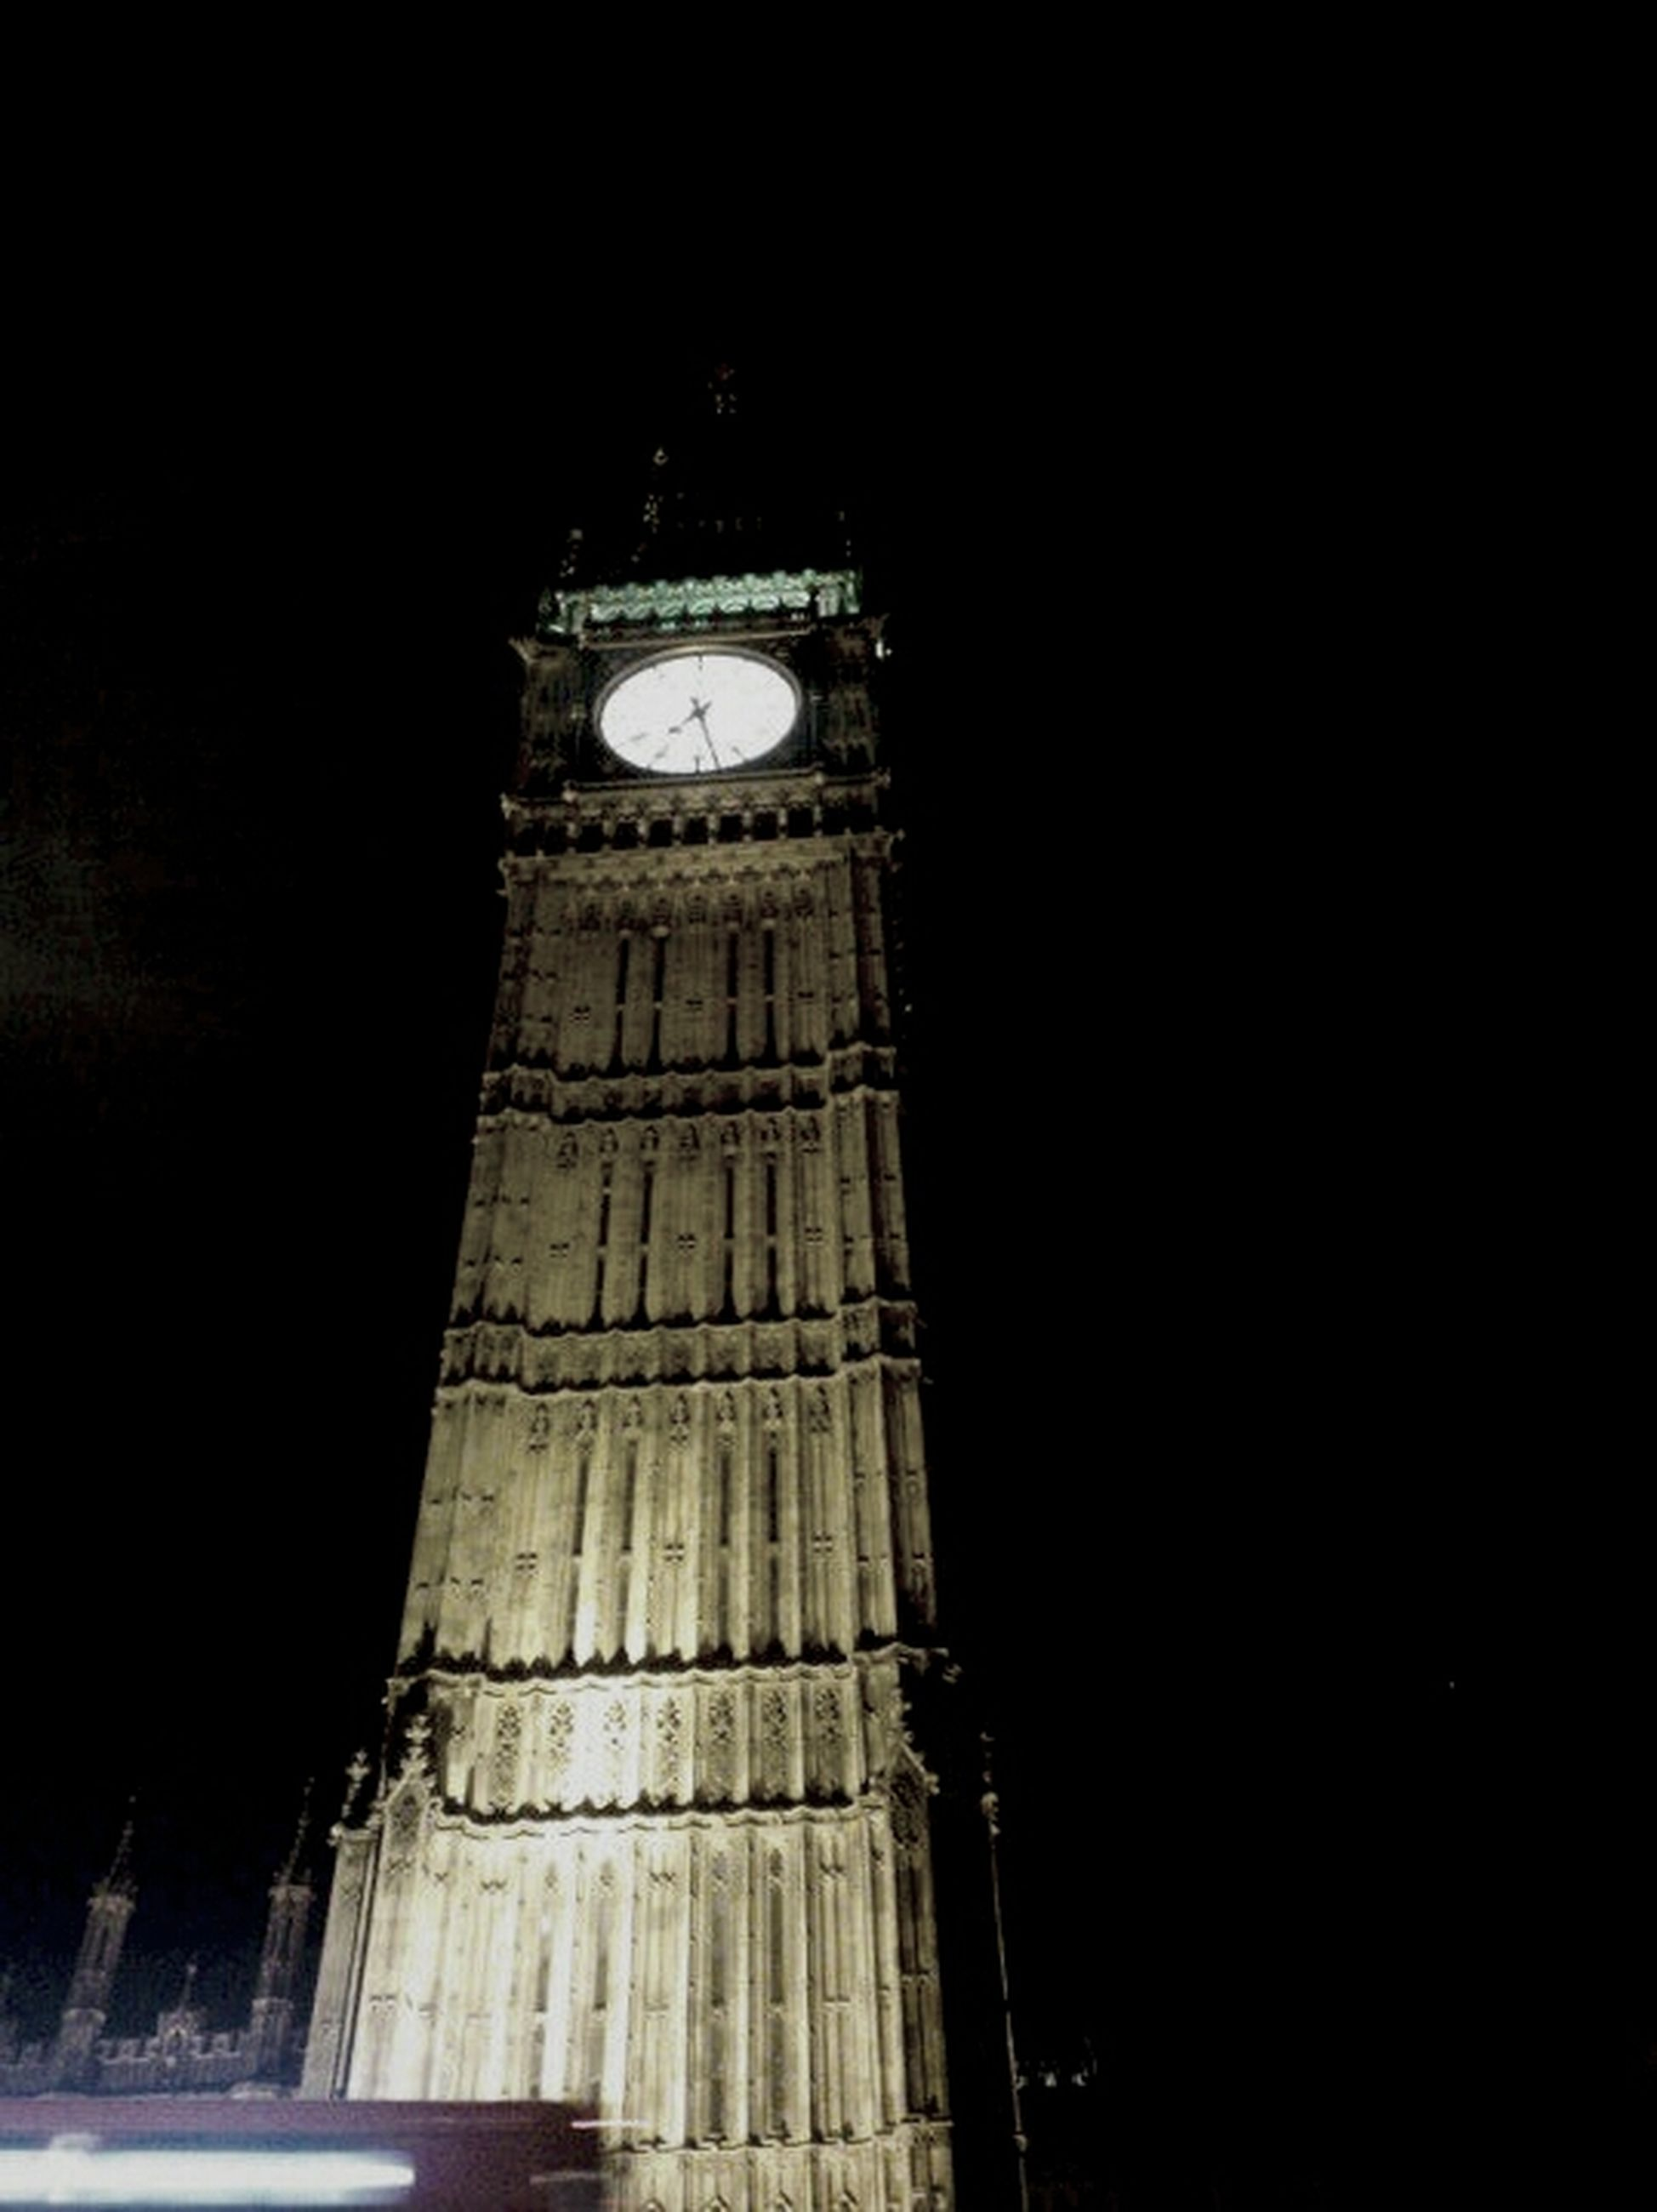 architecture, night, built structure, low angle view, building exterior, tower, international landmark, history, famous place, travel destinations, illuminated, tall - high, tourism, travel, capital cities, clear sky, sky, clock tower, architectural feature, no people